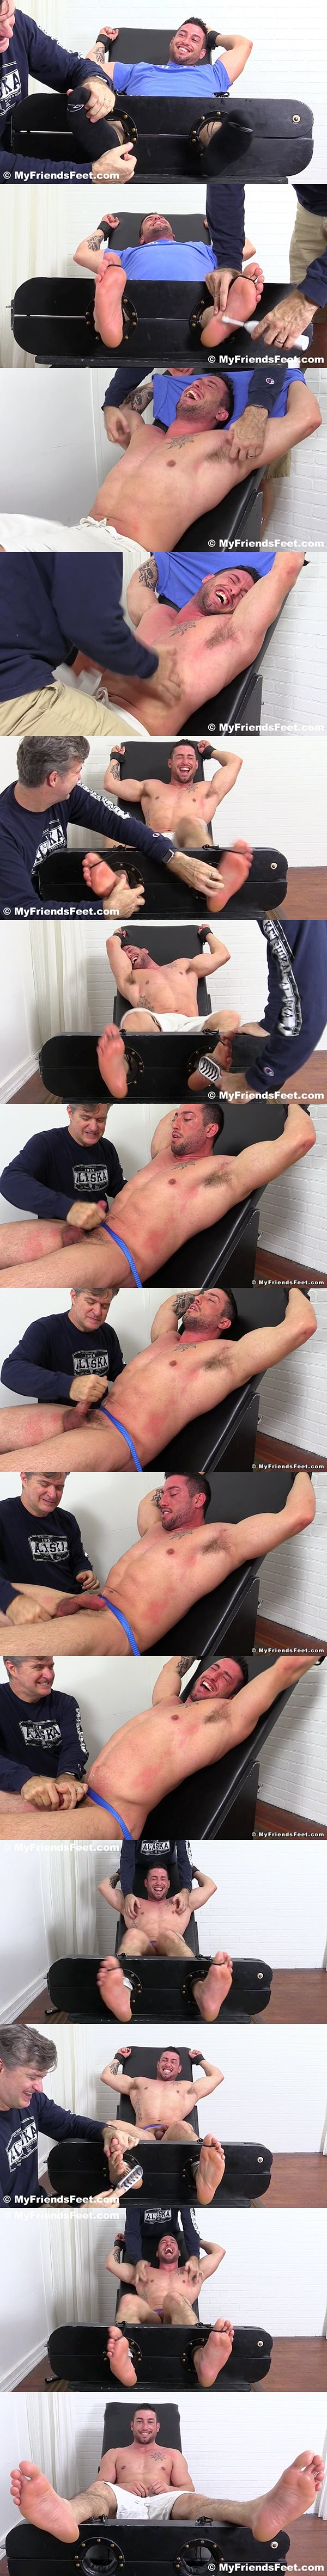 Myfriendsfeet - Casey More Jerked and Tickled 02